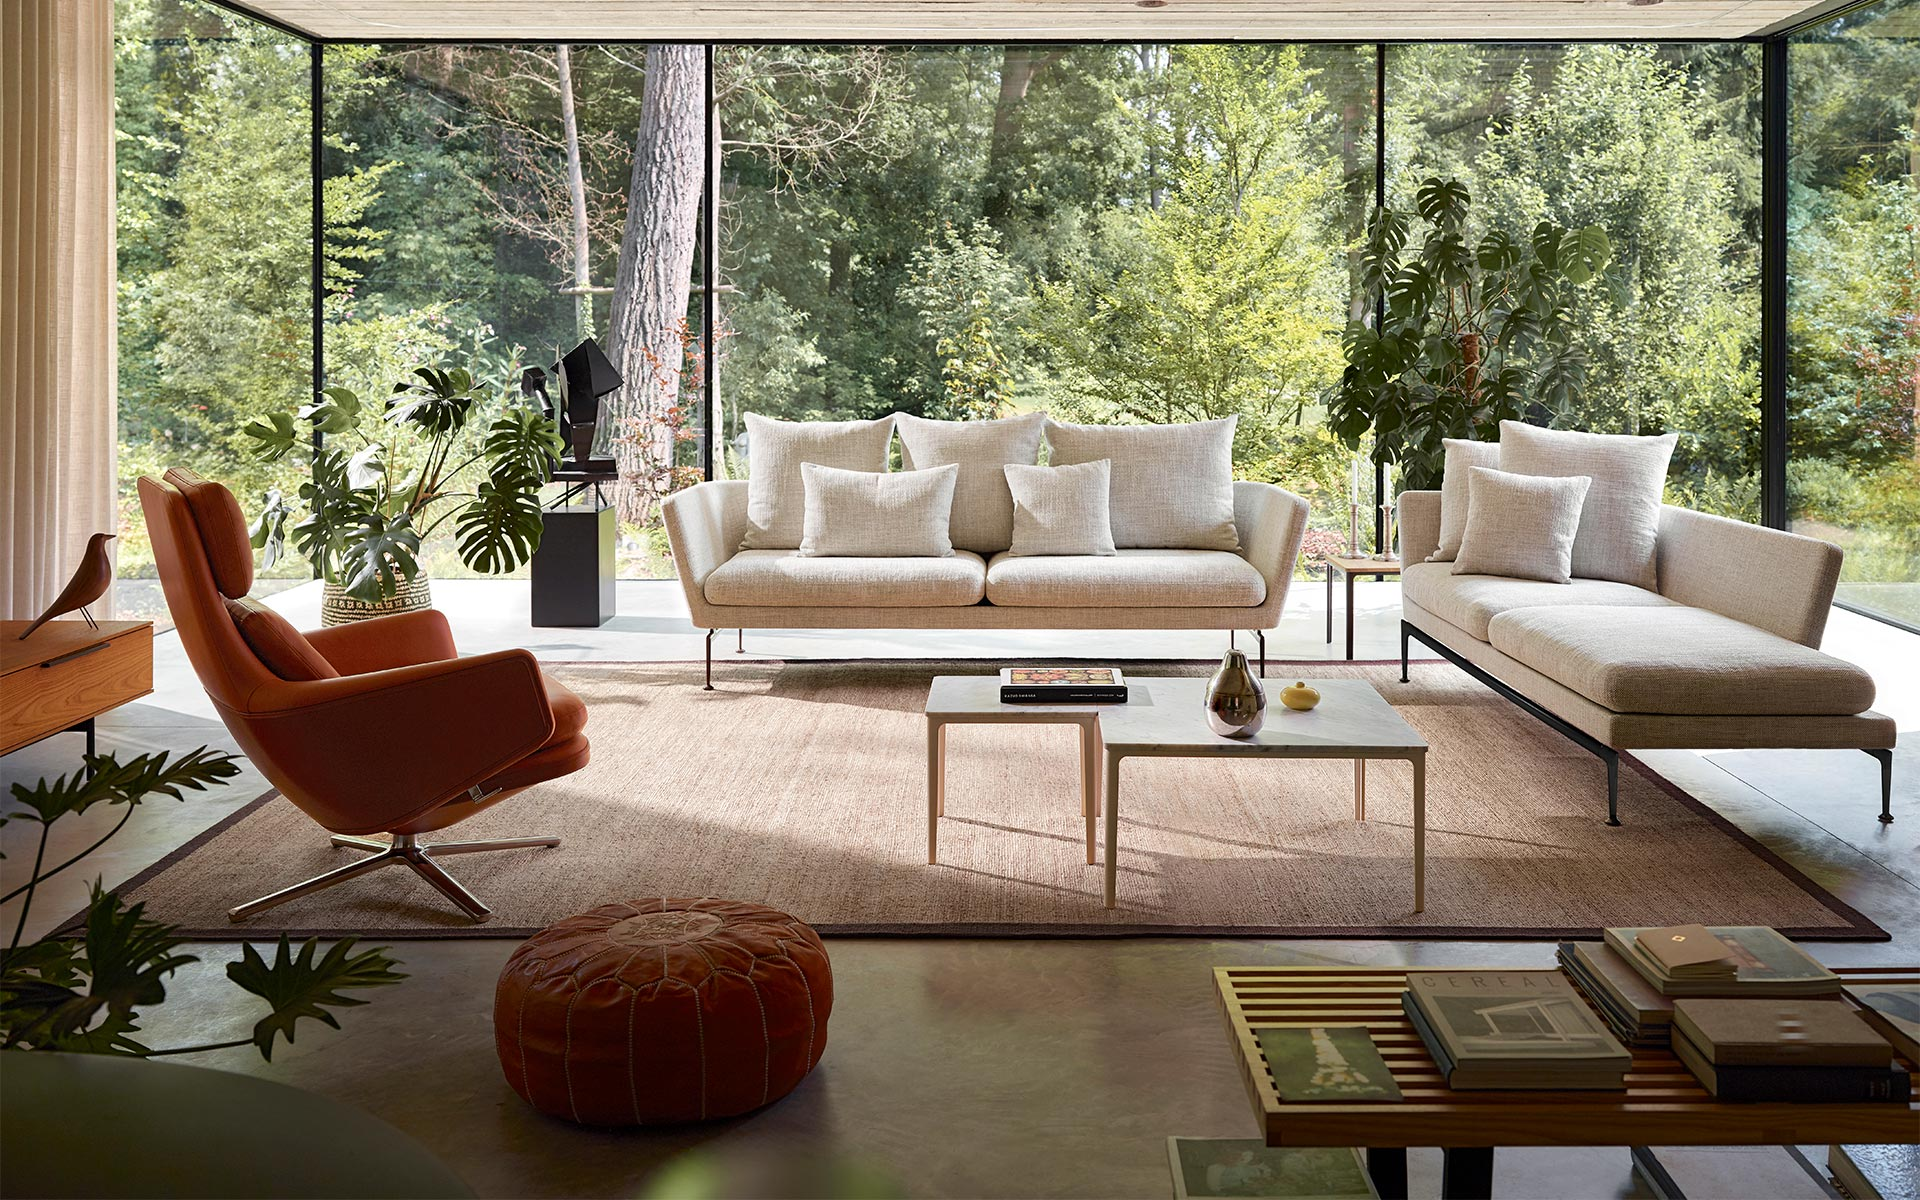 Vitra Grand Relax Suita 3 Seater Suita Chaise Longue Plate Table marble Grand Relax Nelson Bench